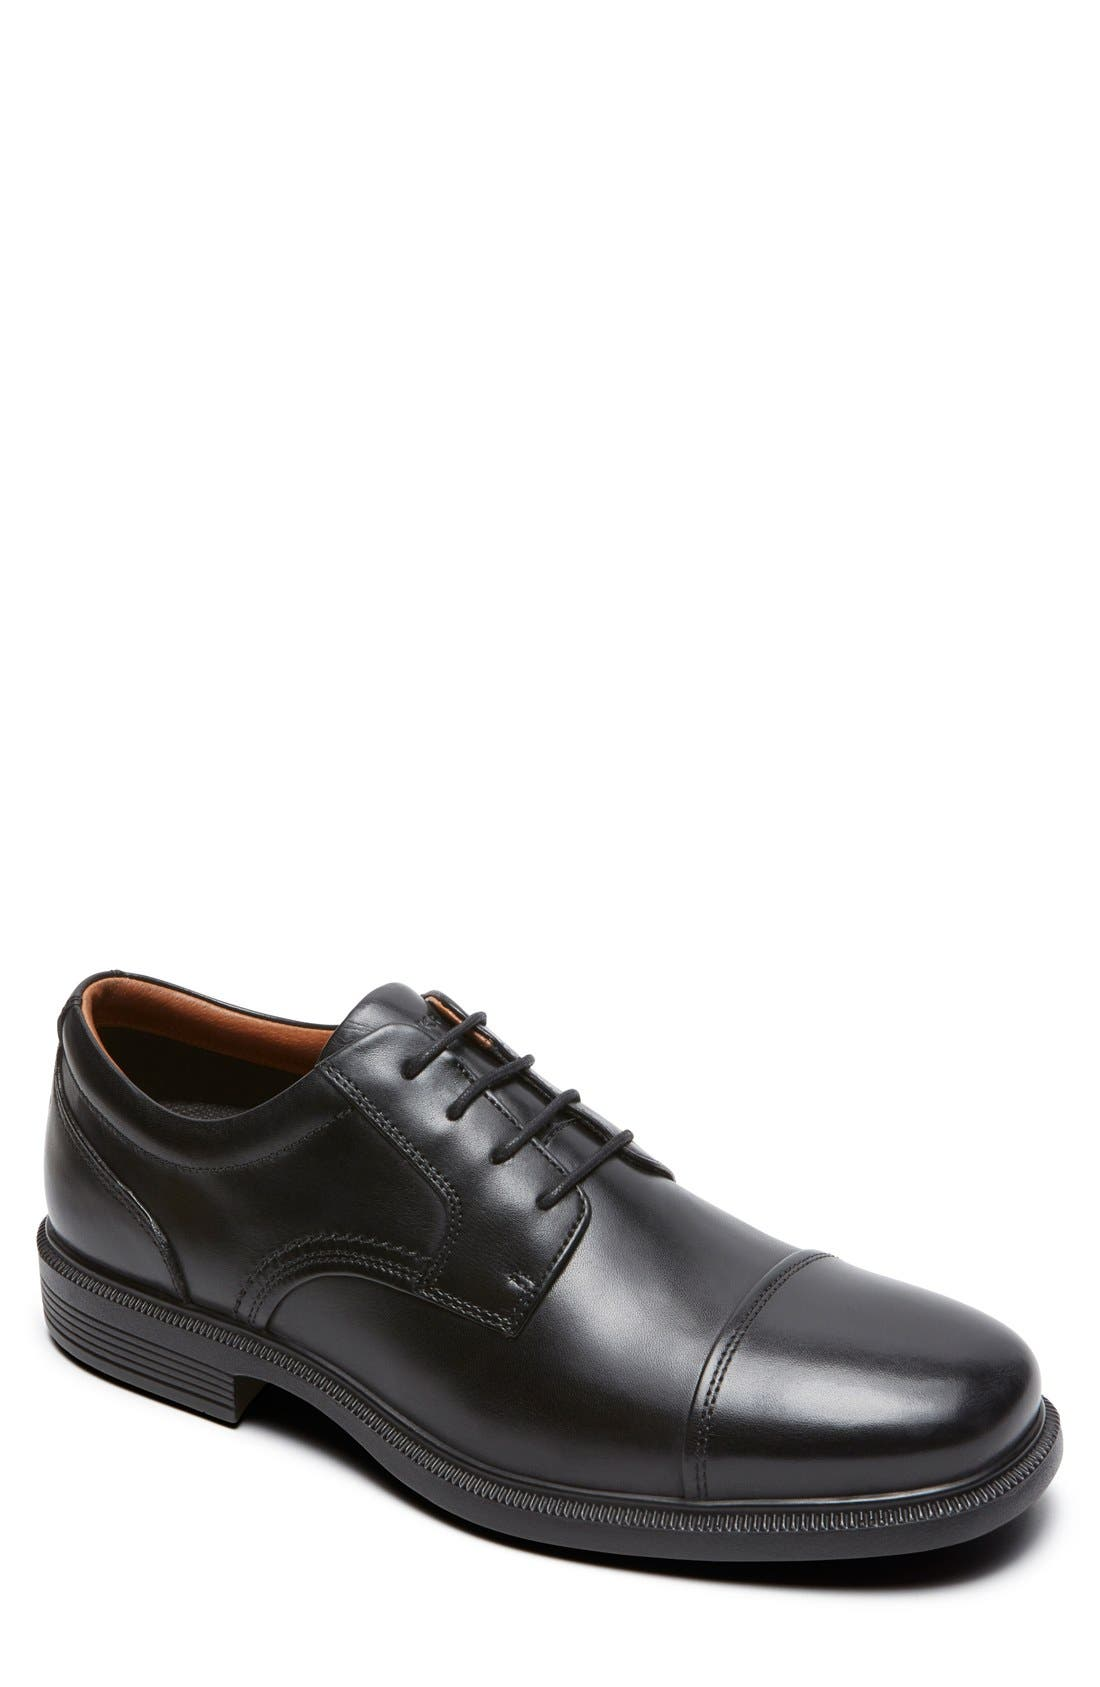 ROCKPORT DresSports Luxe Cap Toe Derby